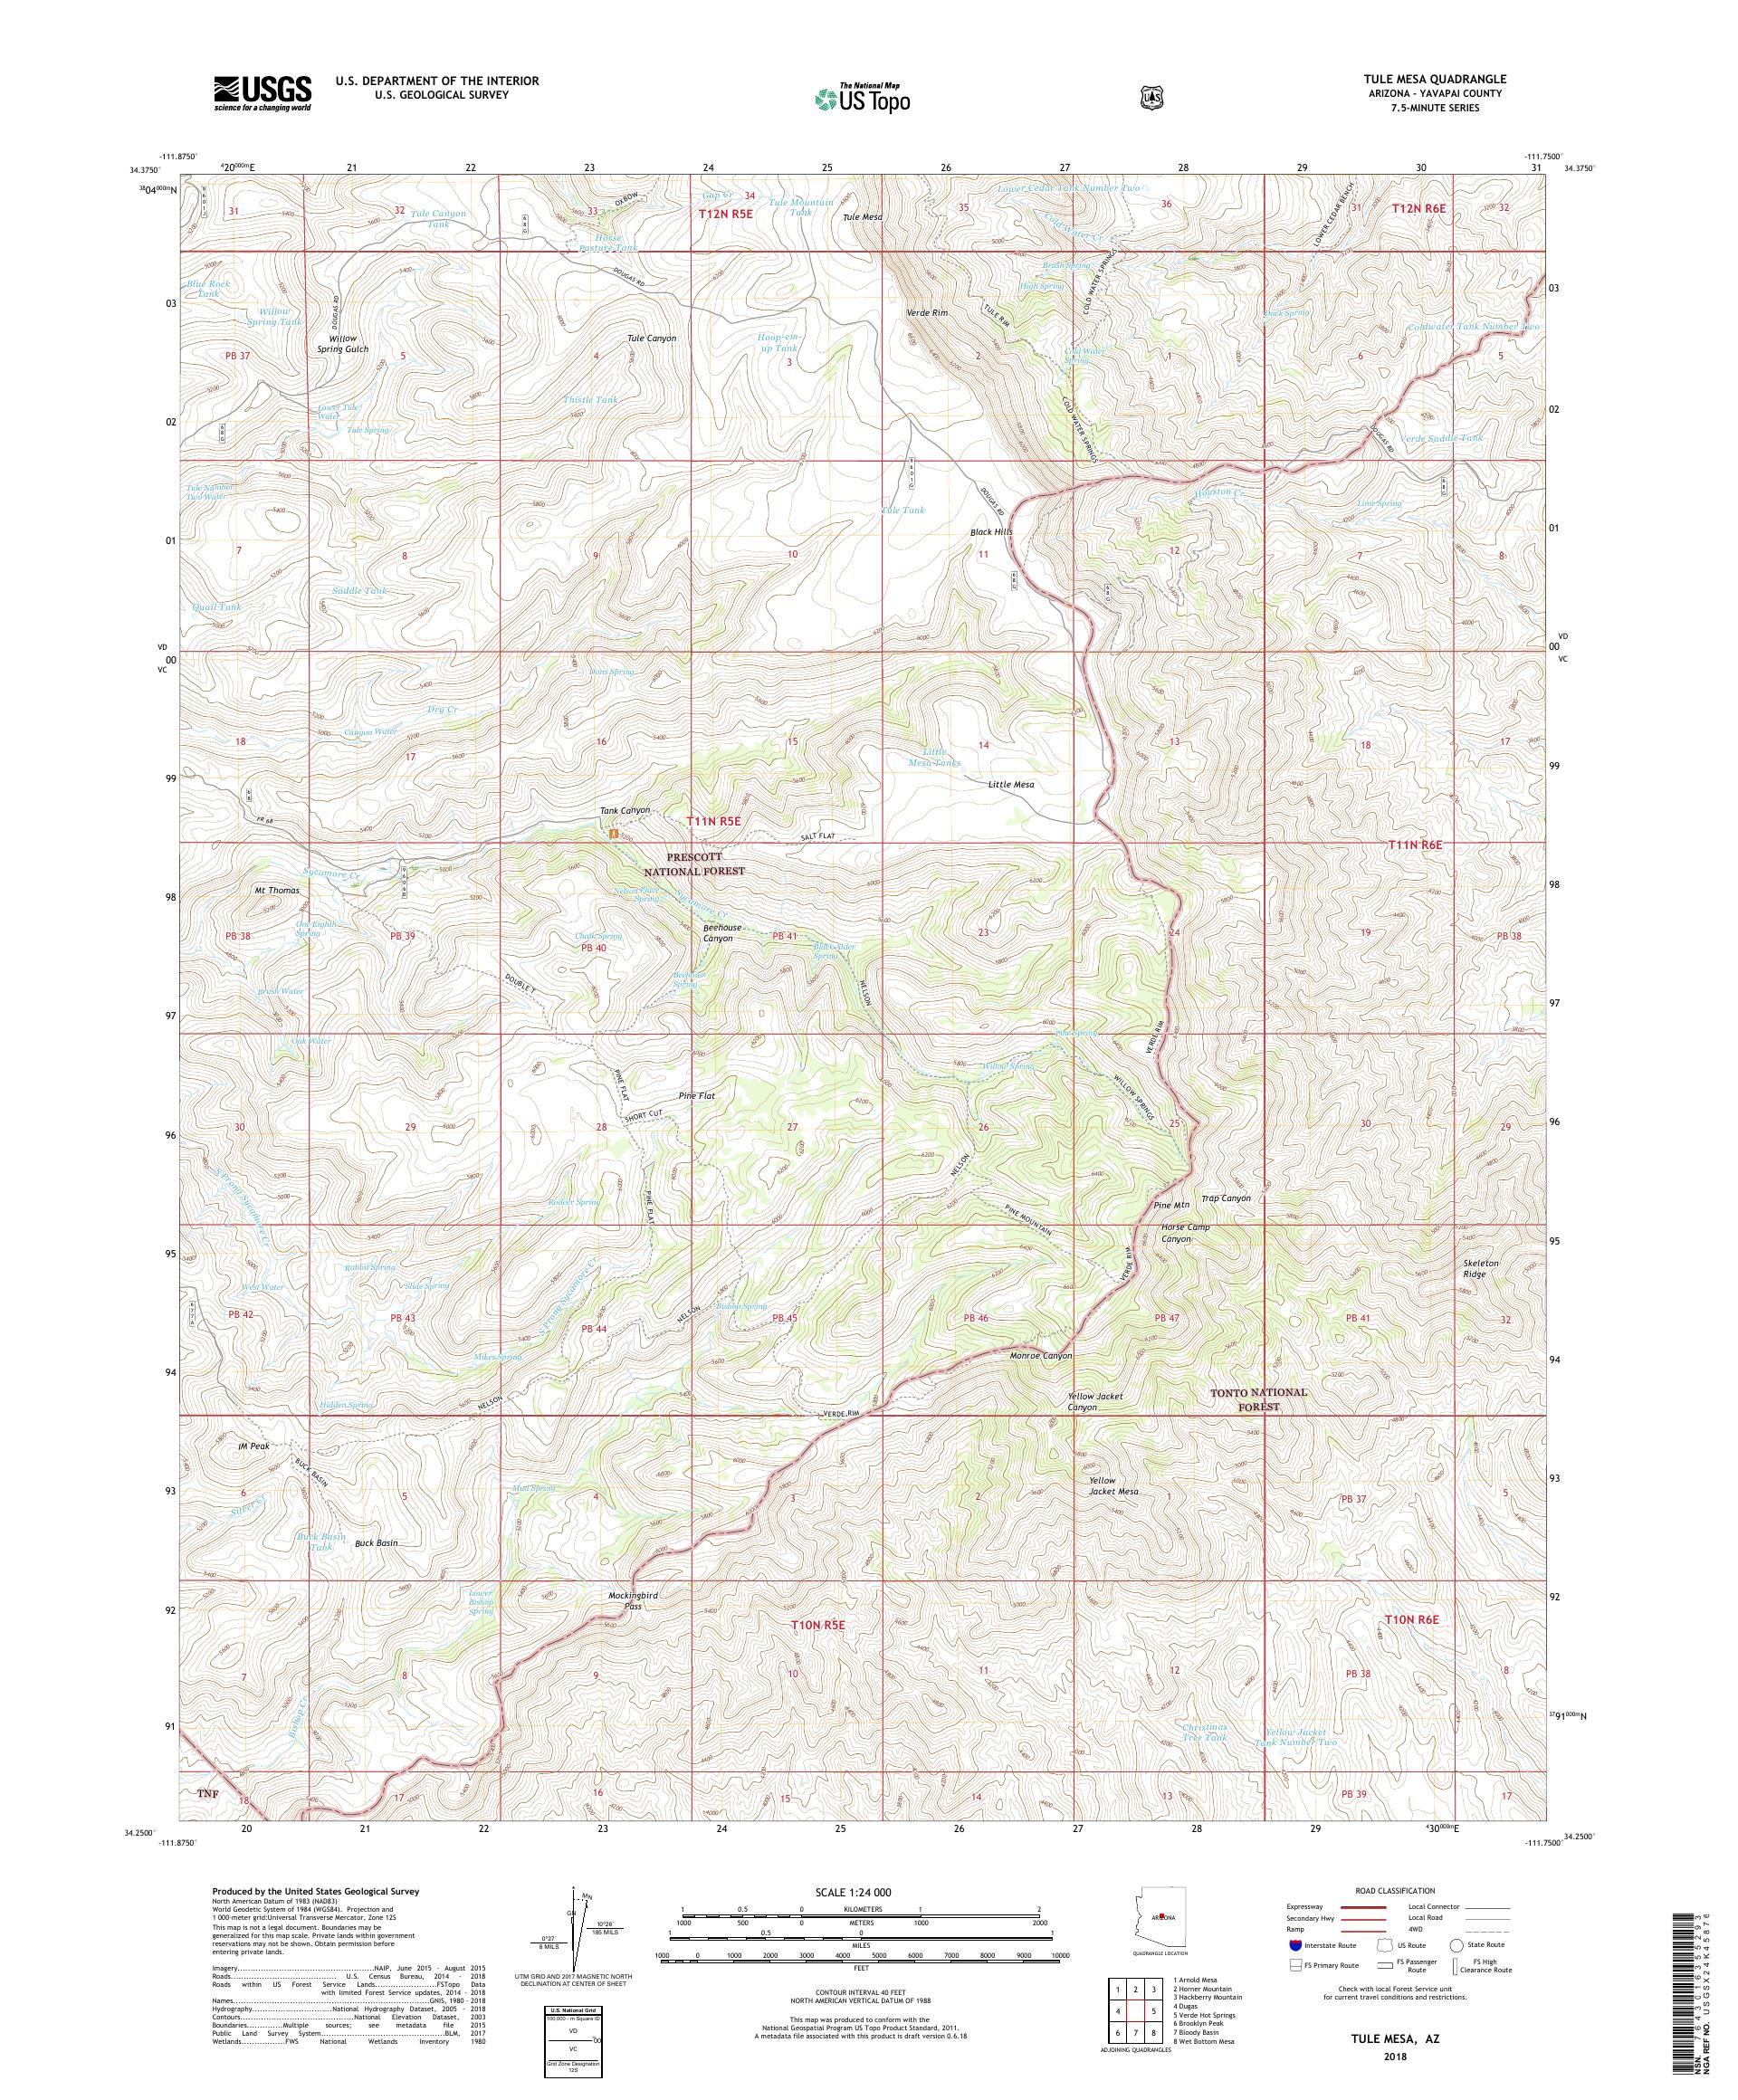 MyTopo Tule Mesa, Arizona USGS Quad Topo Map